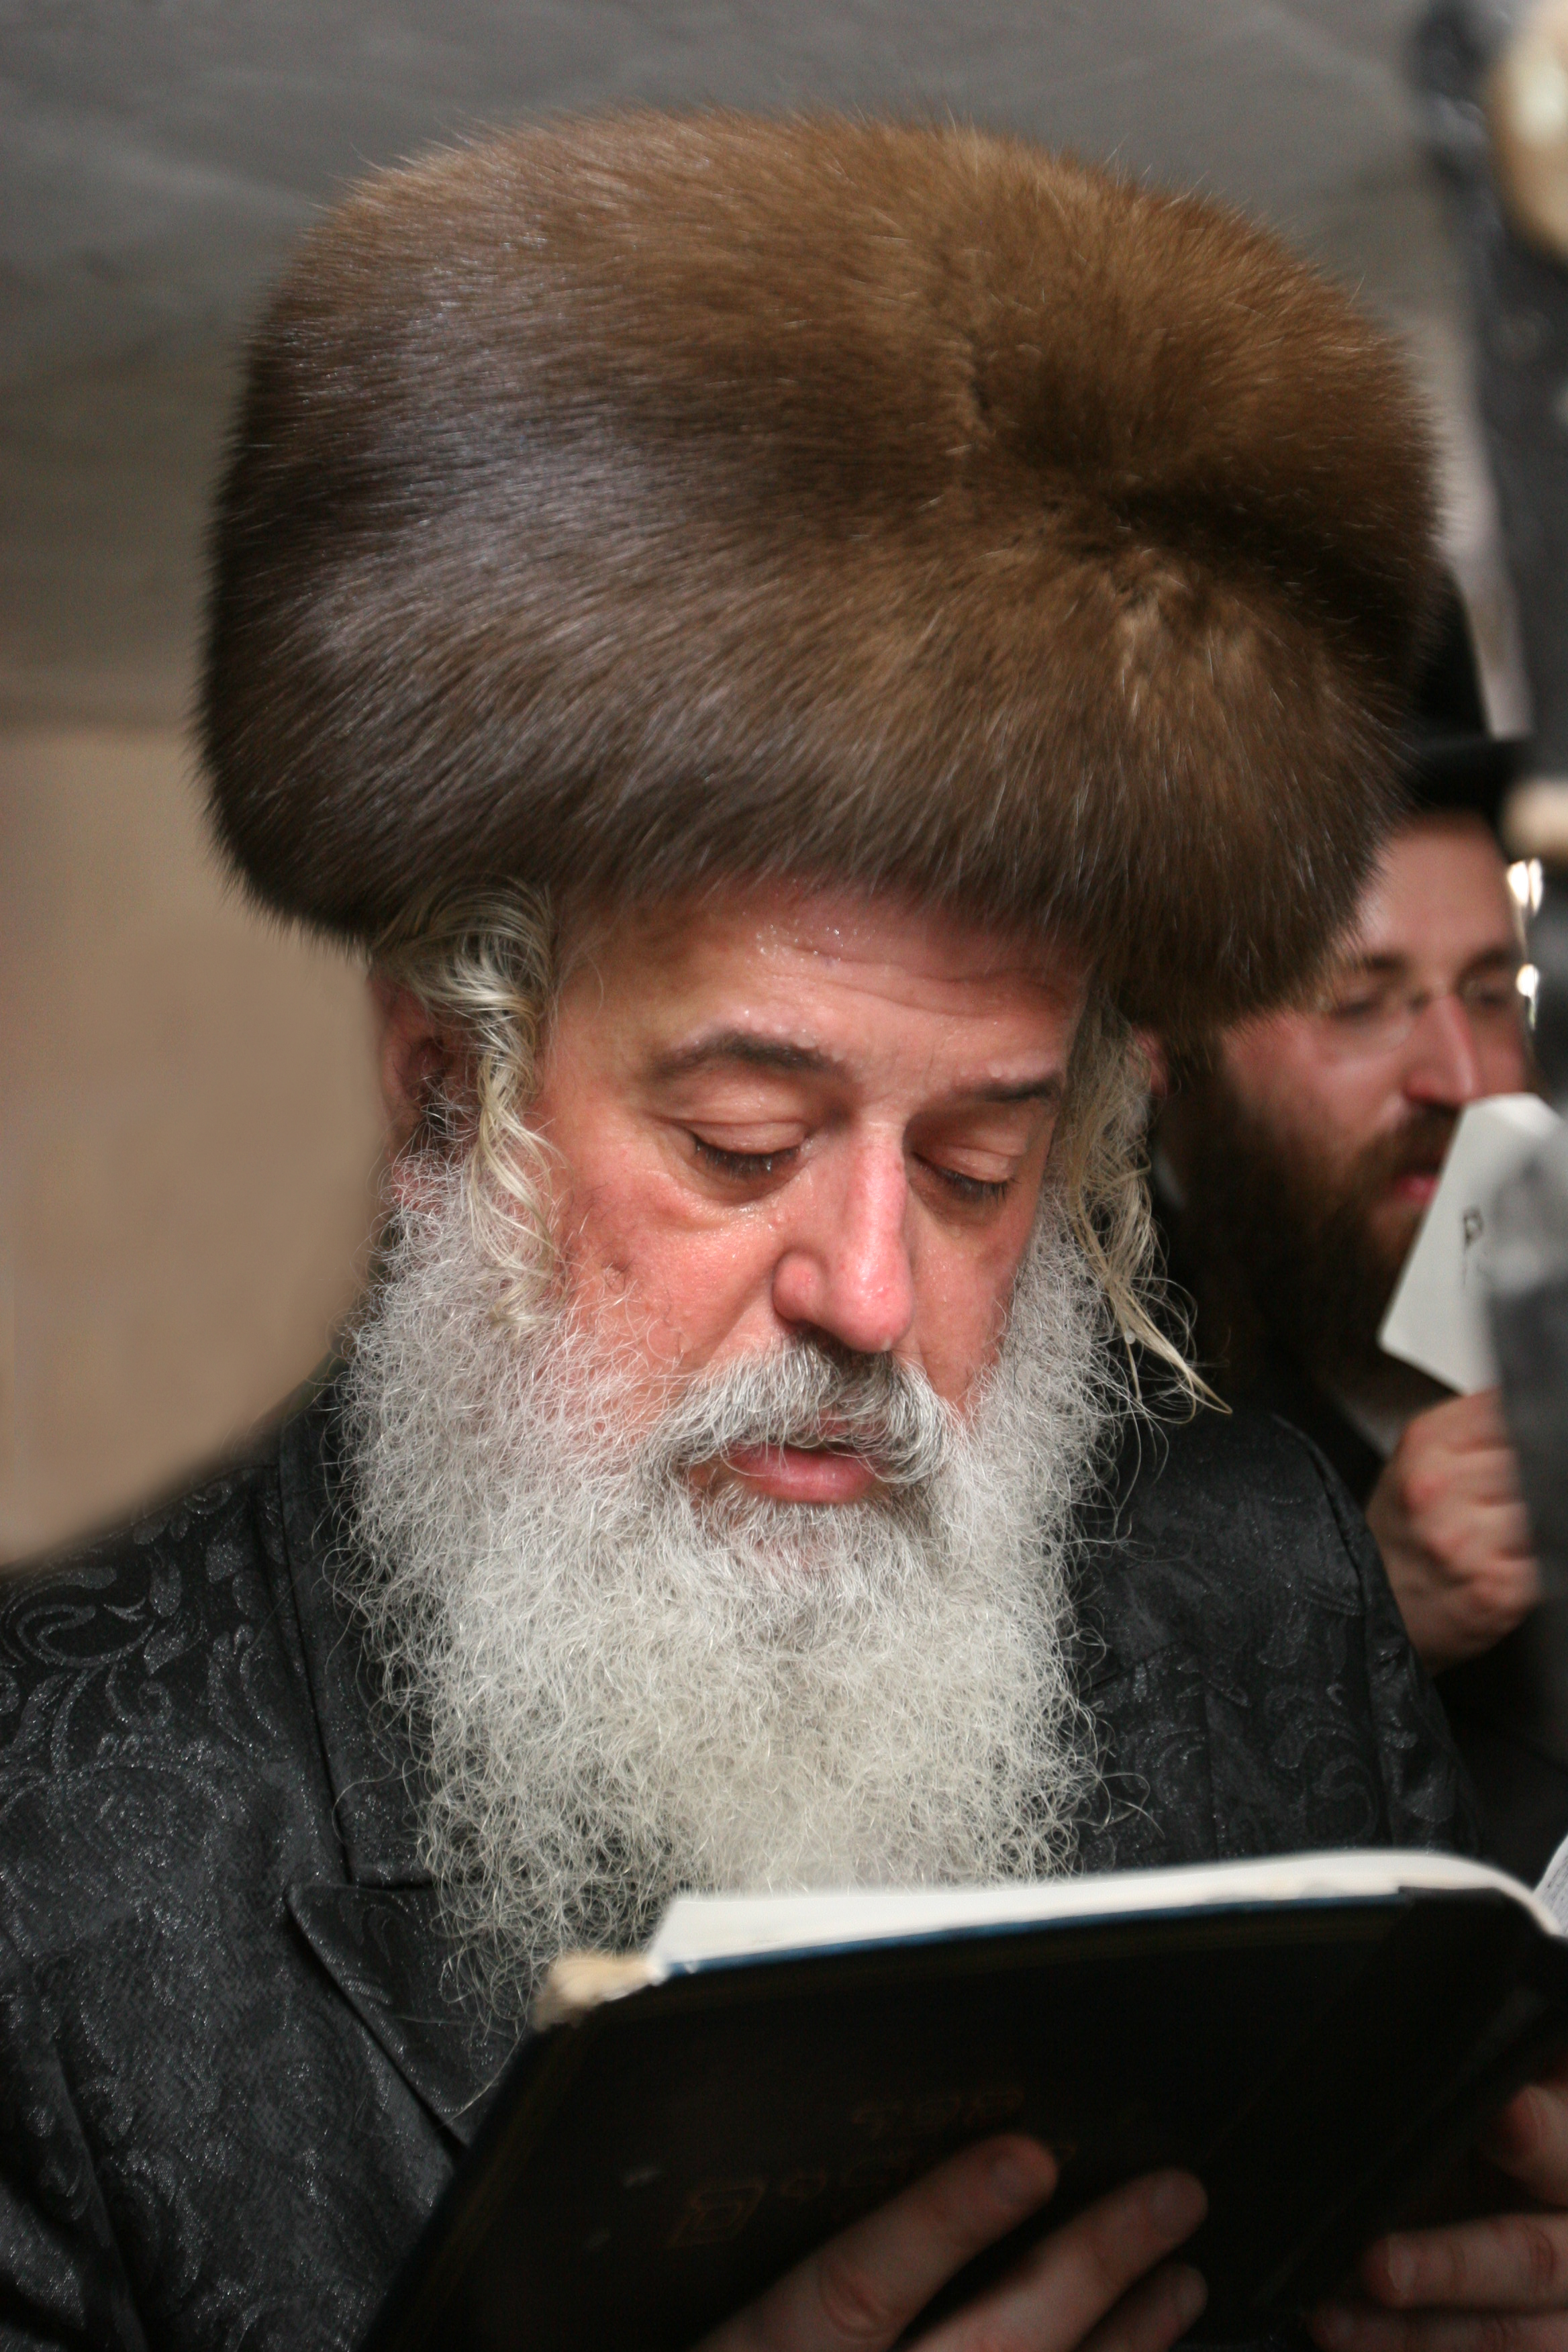 Rabbi Moshe Leib Rabinovich, Munkacser Rebbe, wearing a kolpik. The  kolpik  is made from brown fur. Many in the Jewish community weighed in on the NYC Fur ban citing the ban would impede religious freedom.